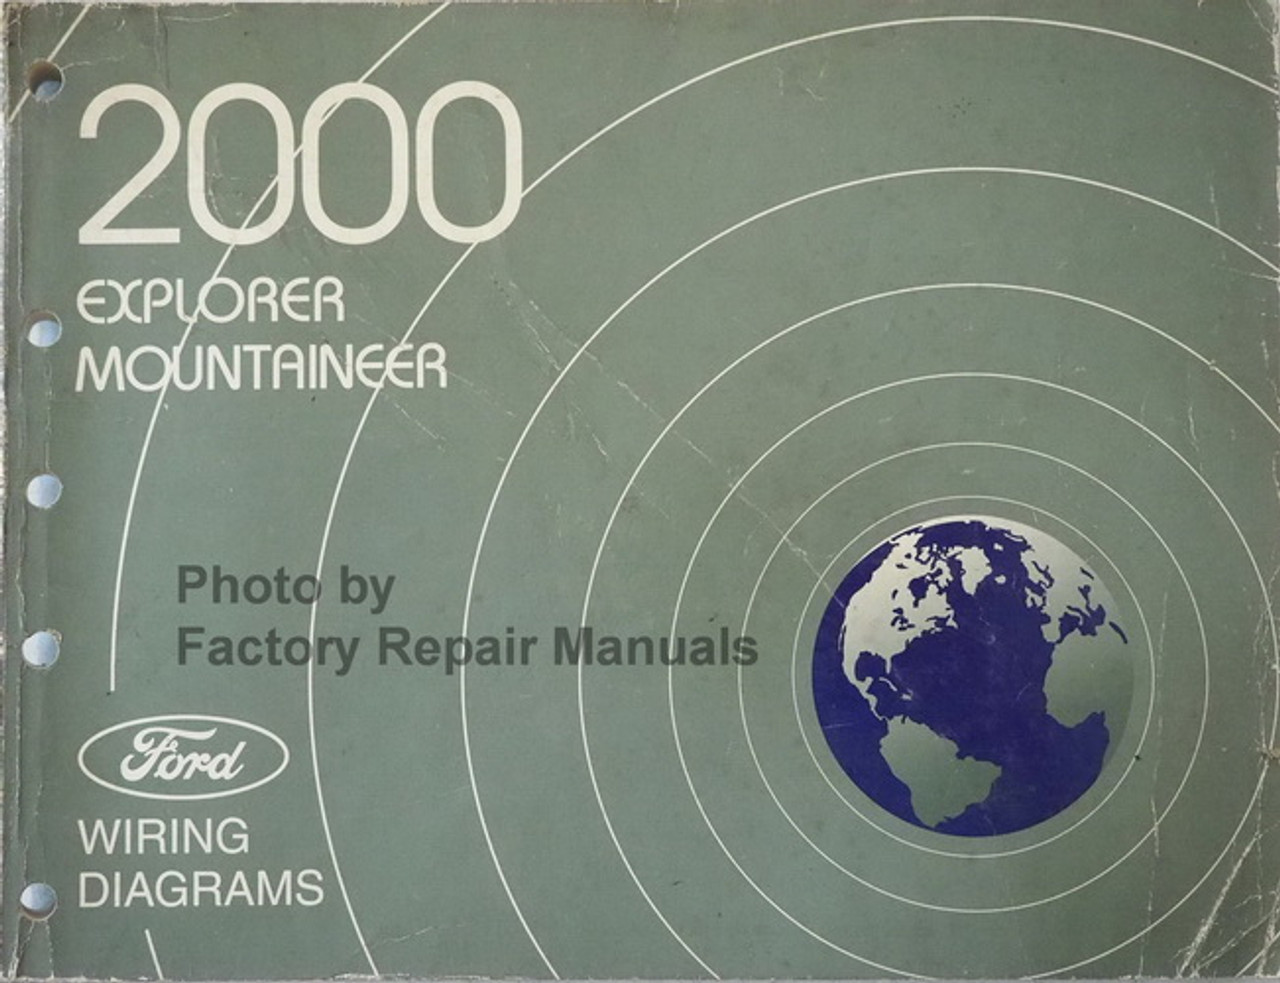 2000 Ford Explorer Mercury Mountaineer Electrical Wiring Diagrams Original Manual